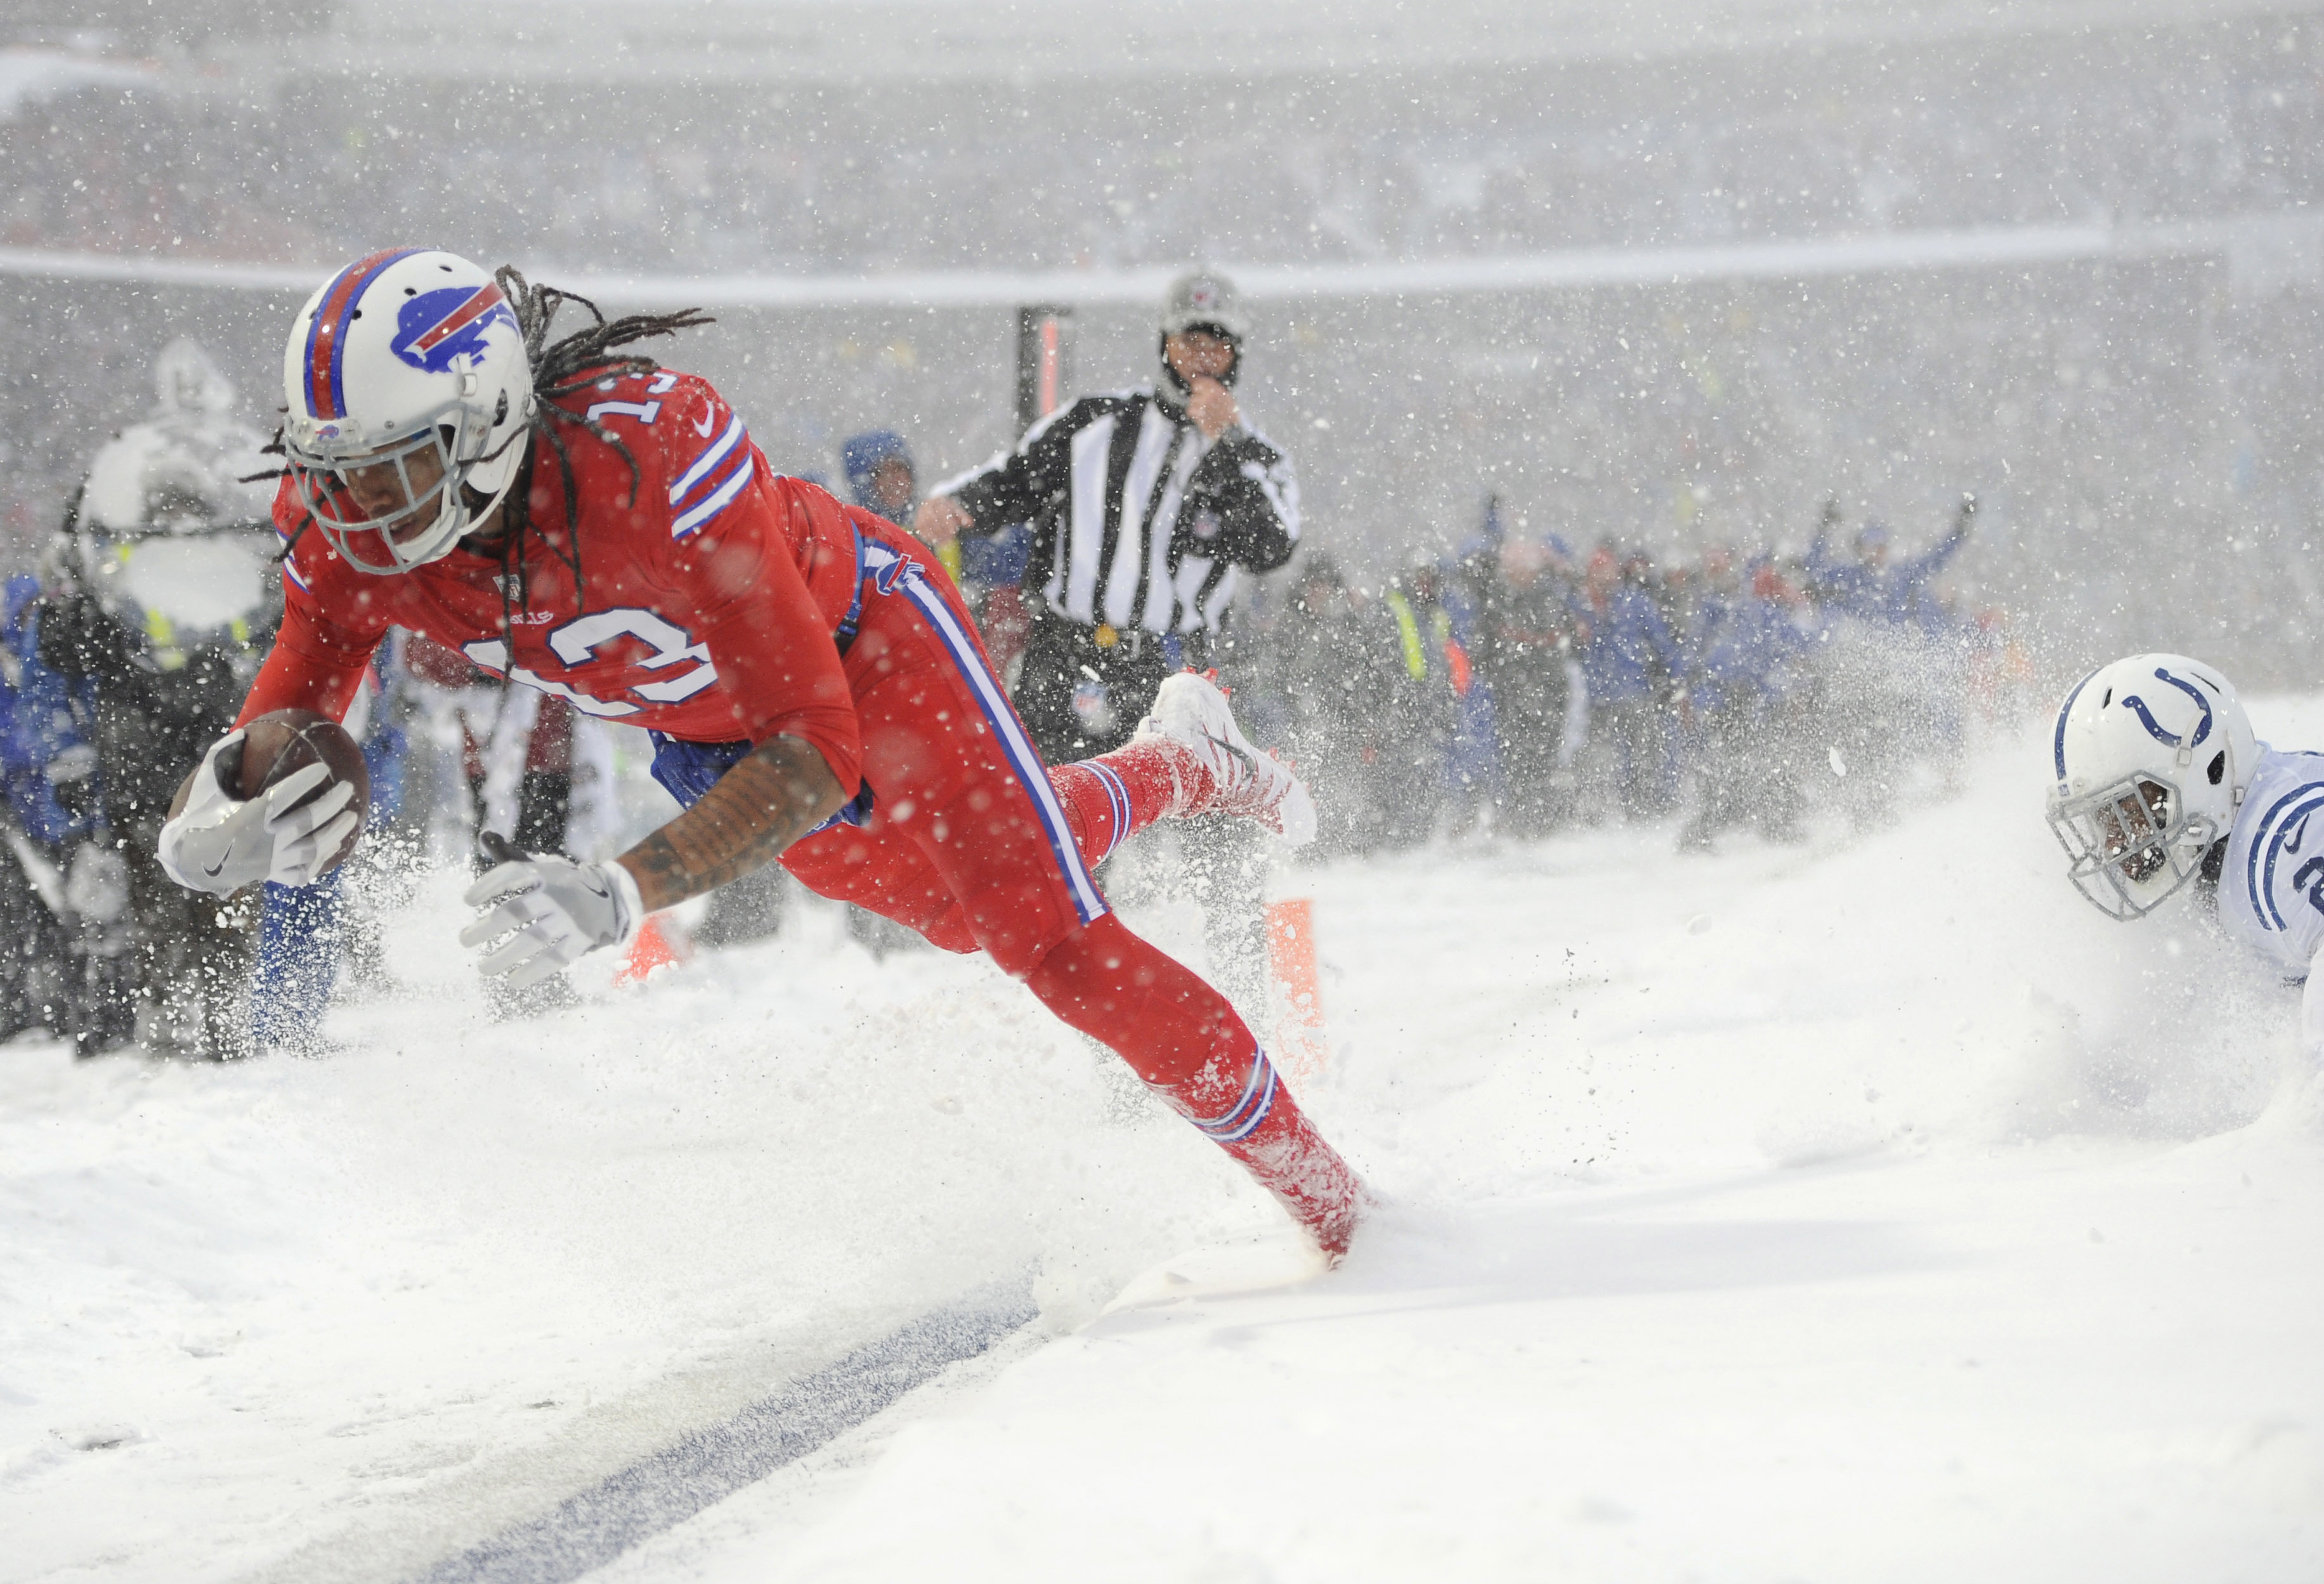 Snow flurries are in the forecast again this week for Buffalo. Another blizzard would be wonderful for those who like to play the unders. (AP Photo/Adrian Kraus)